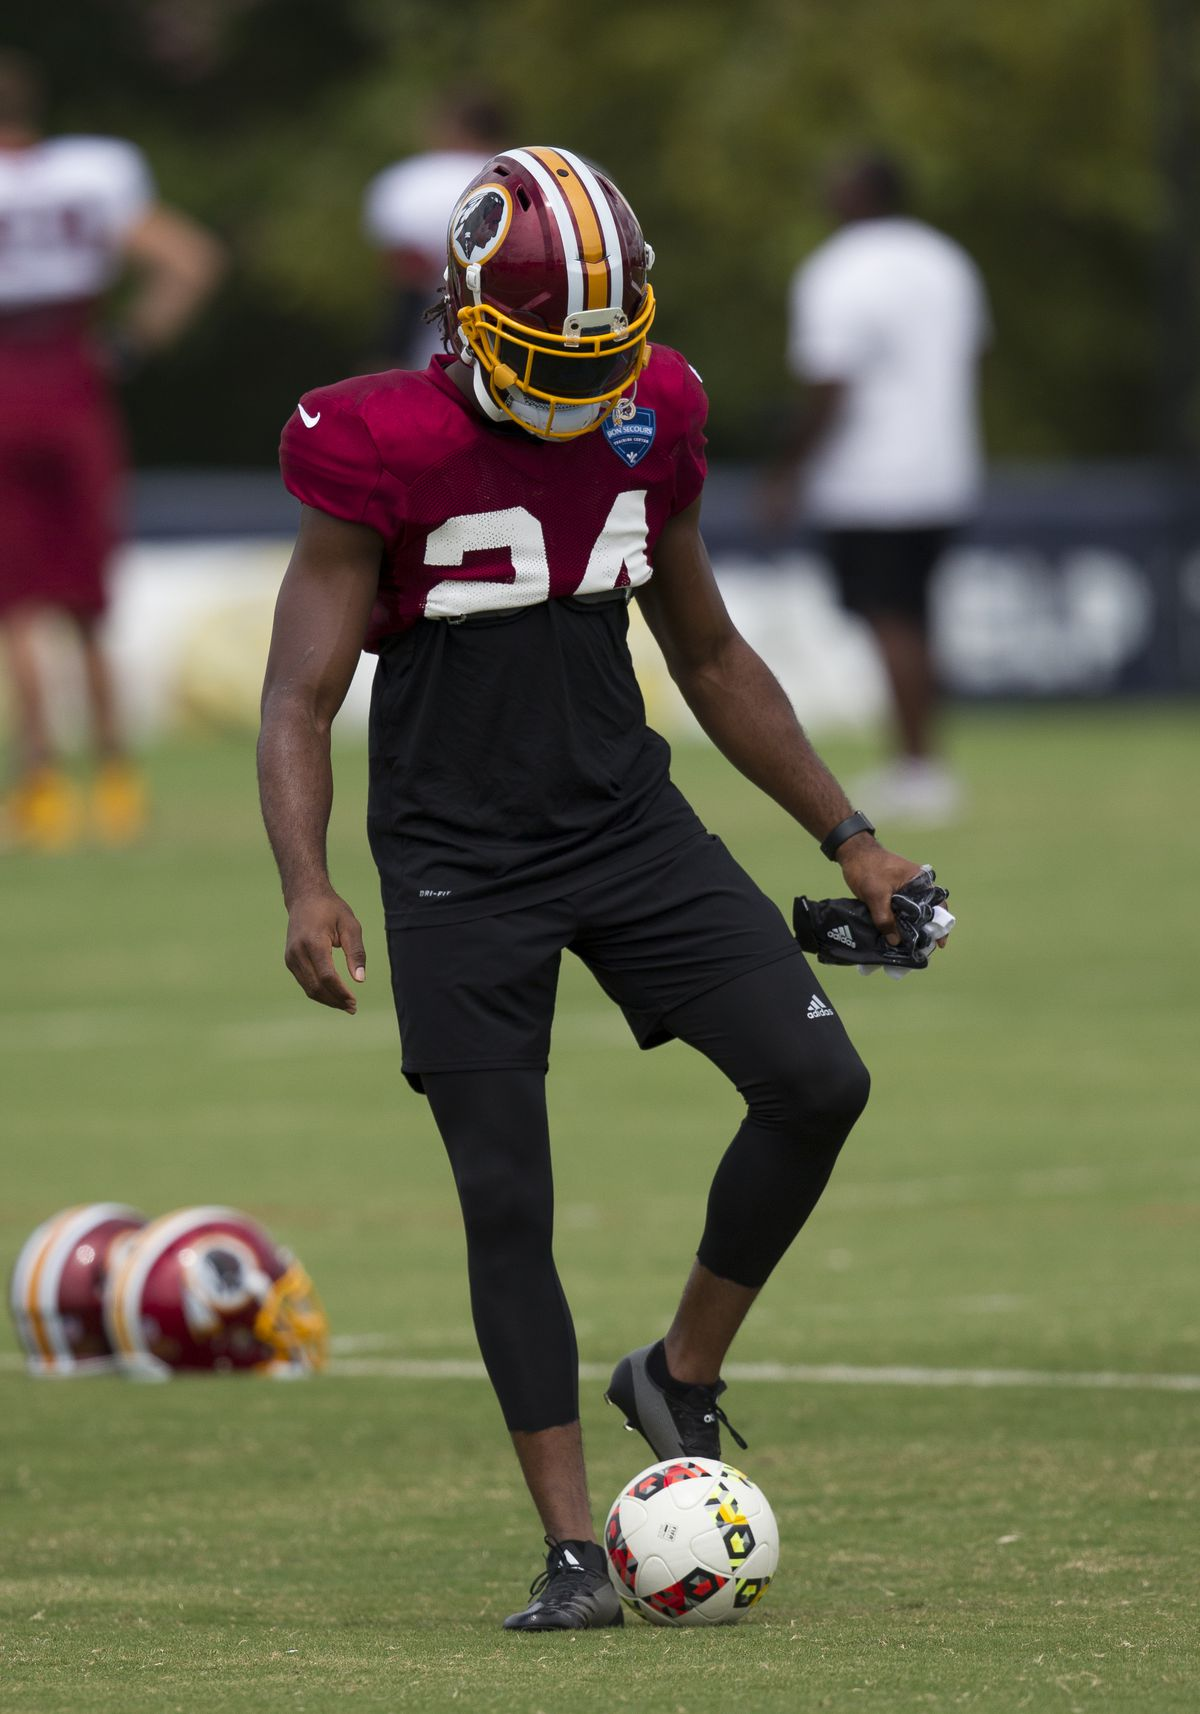 Josh Norman with a soccer ball